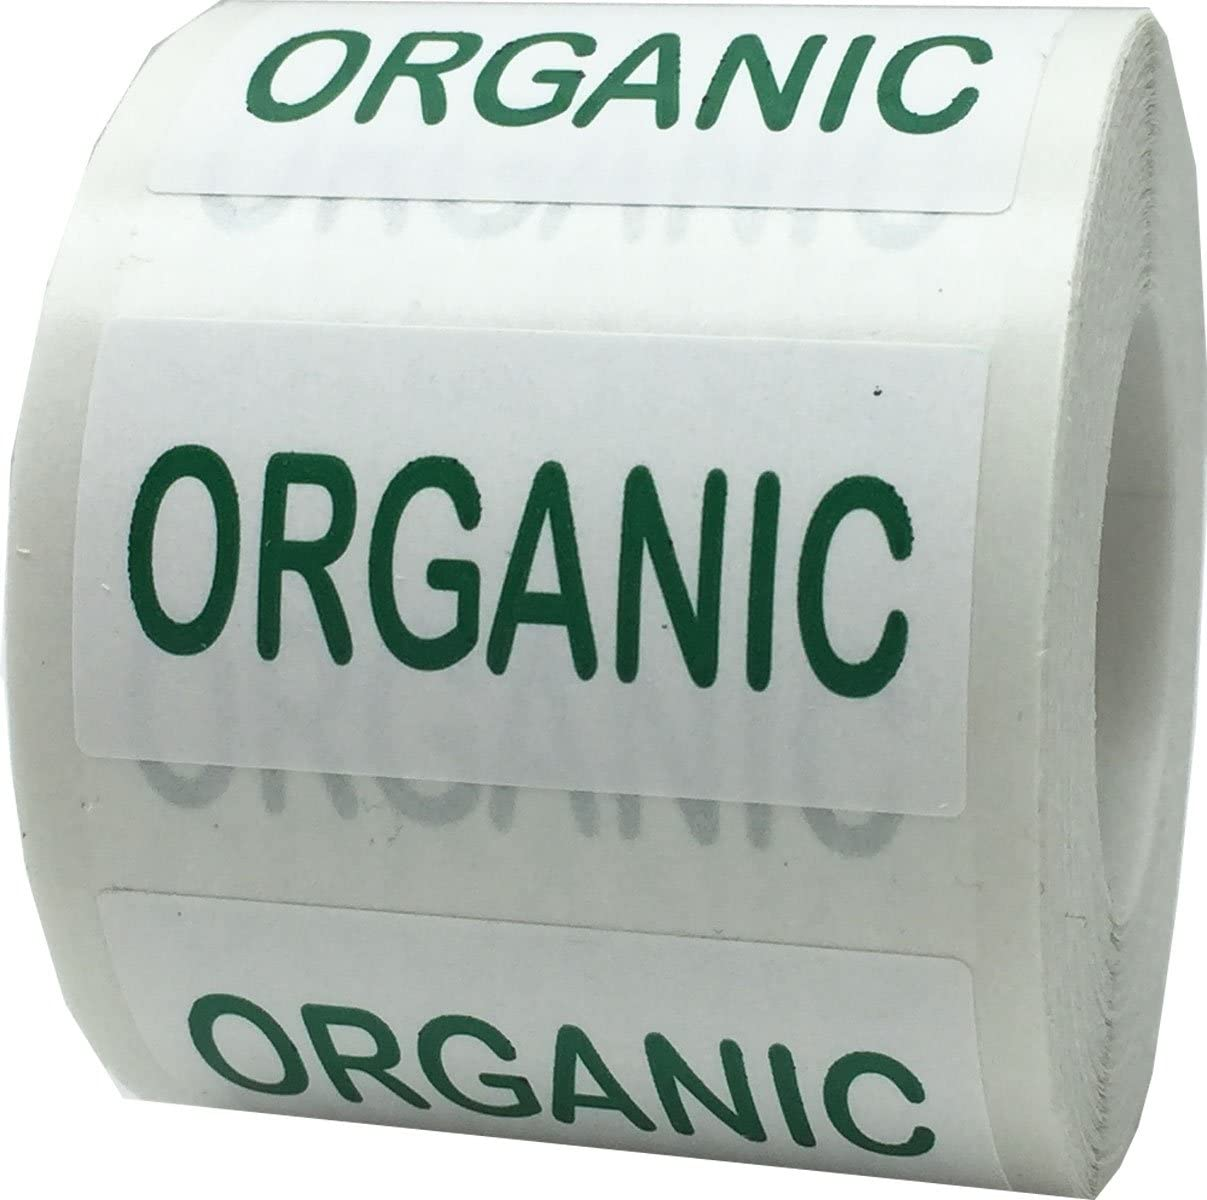 White with Green Organic Rectangle Stickers, 3/4 x 1.5 Inches in Size, 500 Labels on a Roll